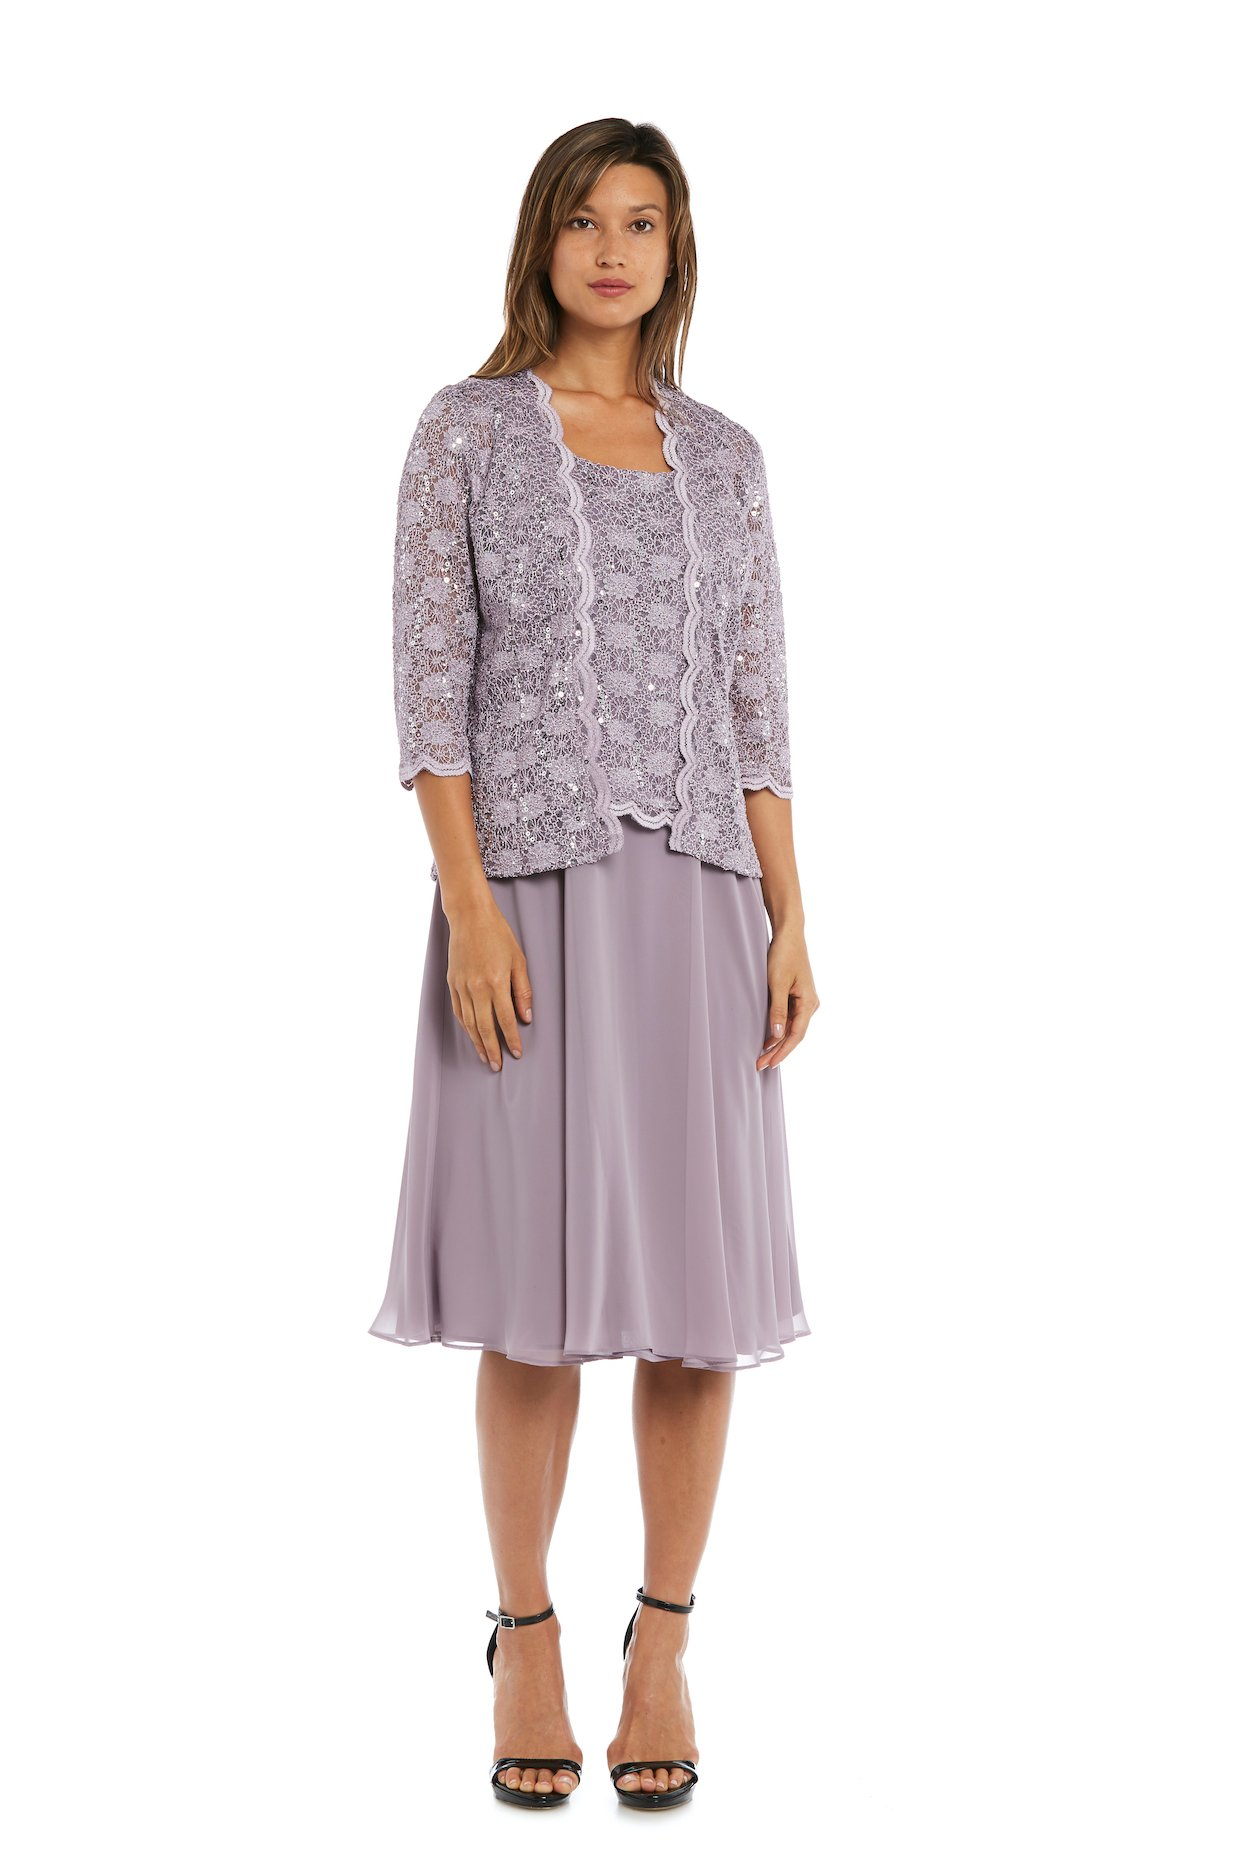 Sequined Lace Chiffon Dress and Jacket -Orchid - Front